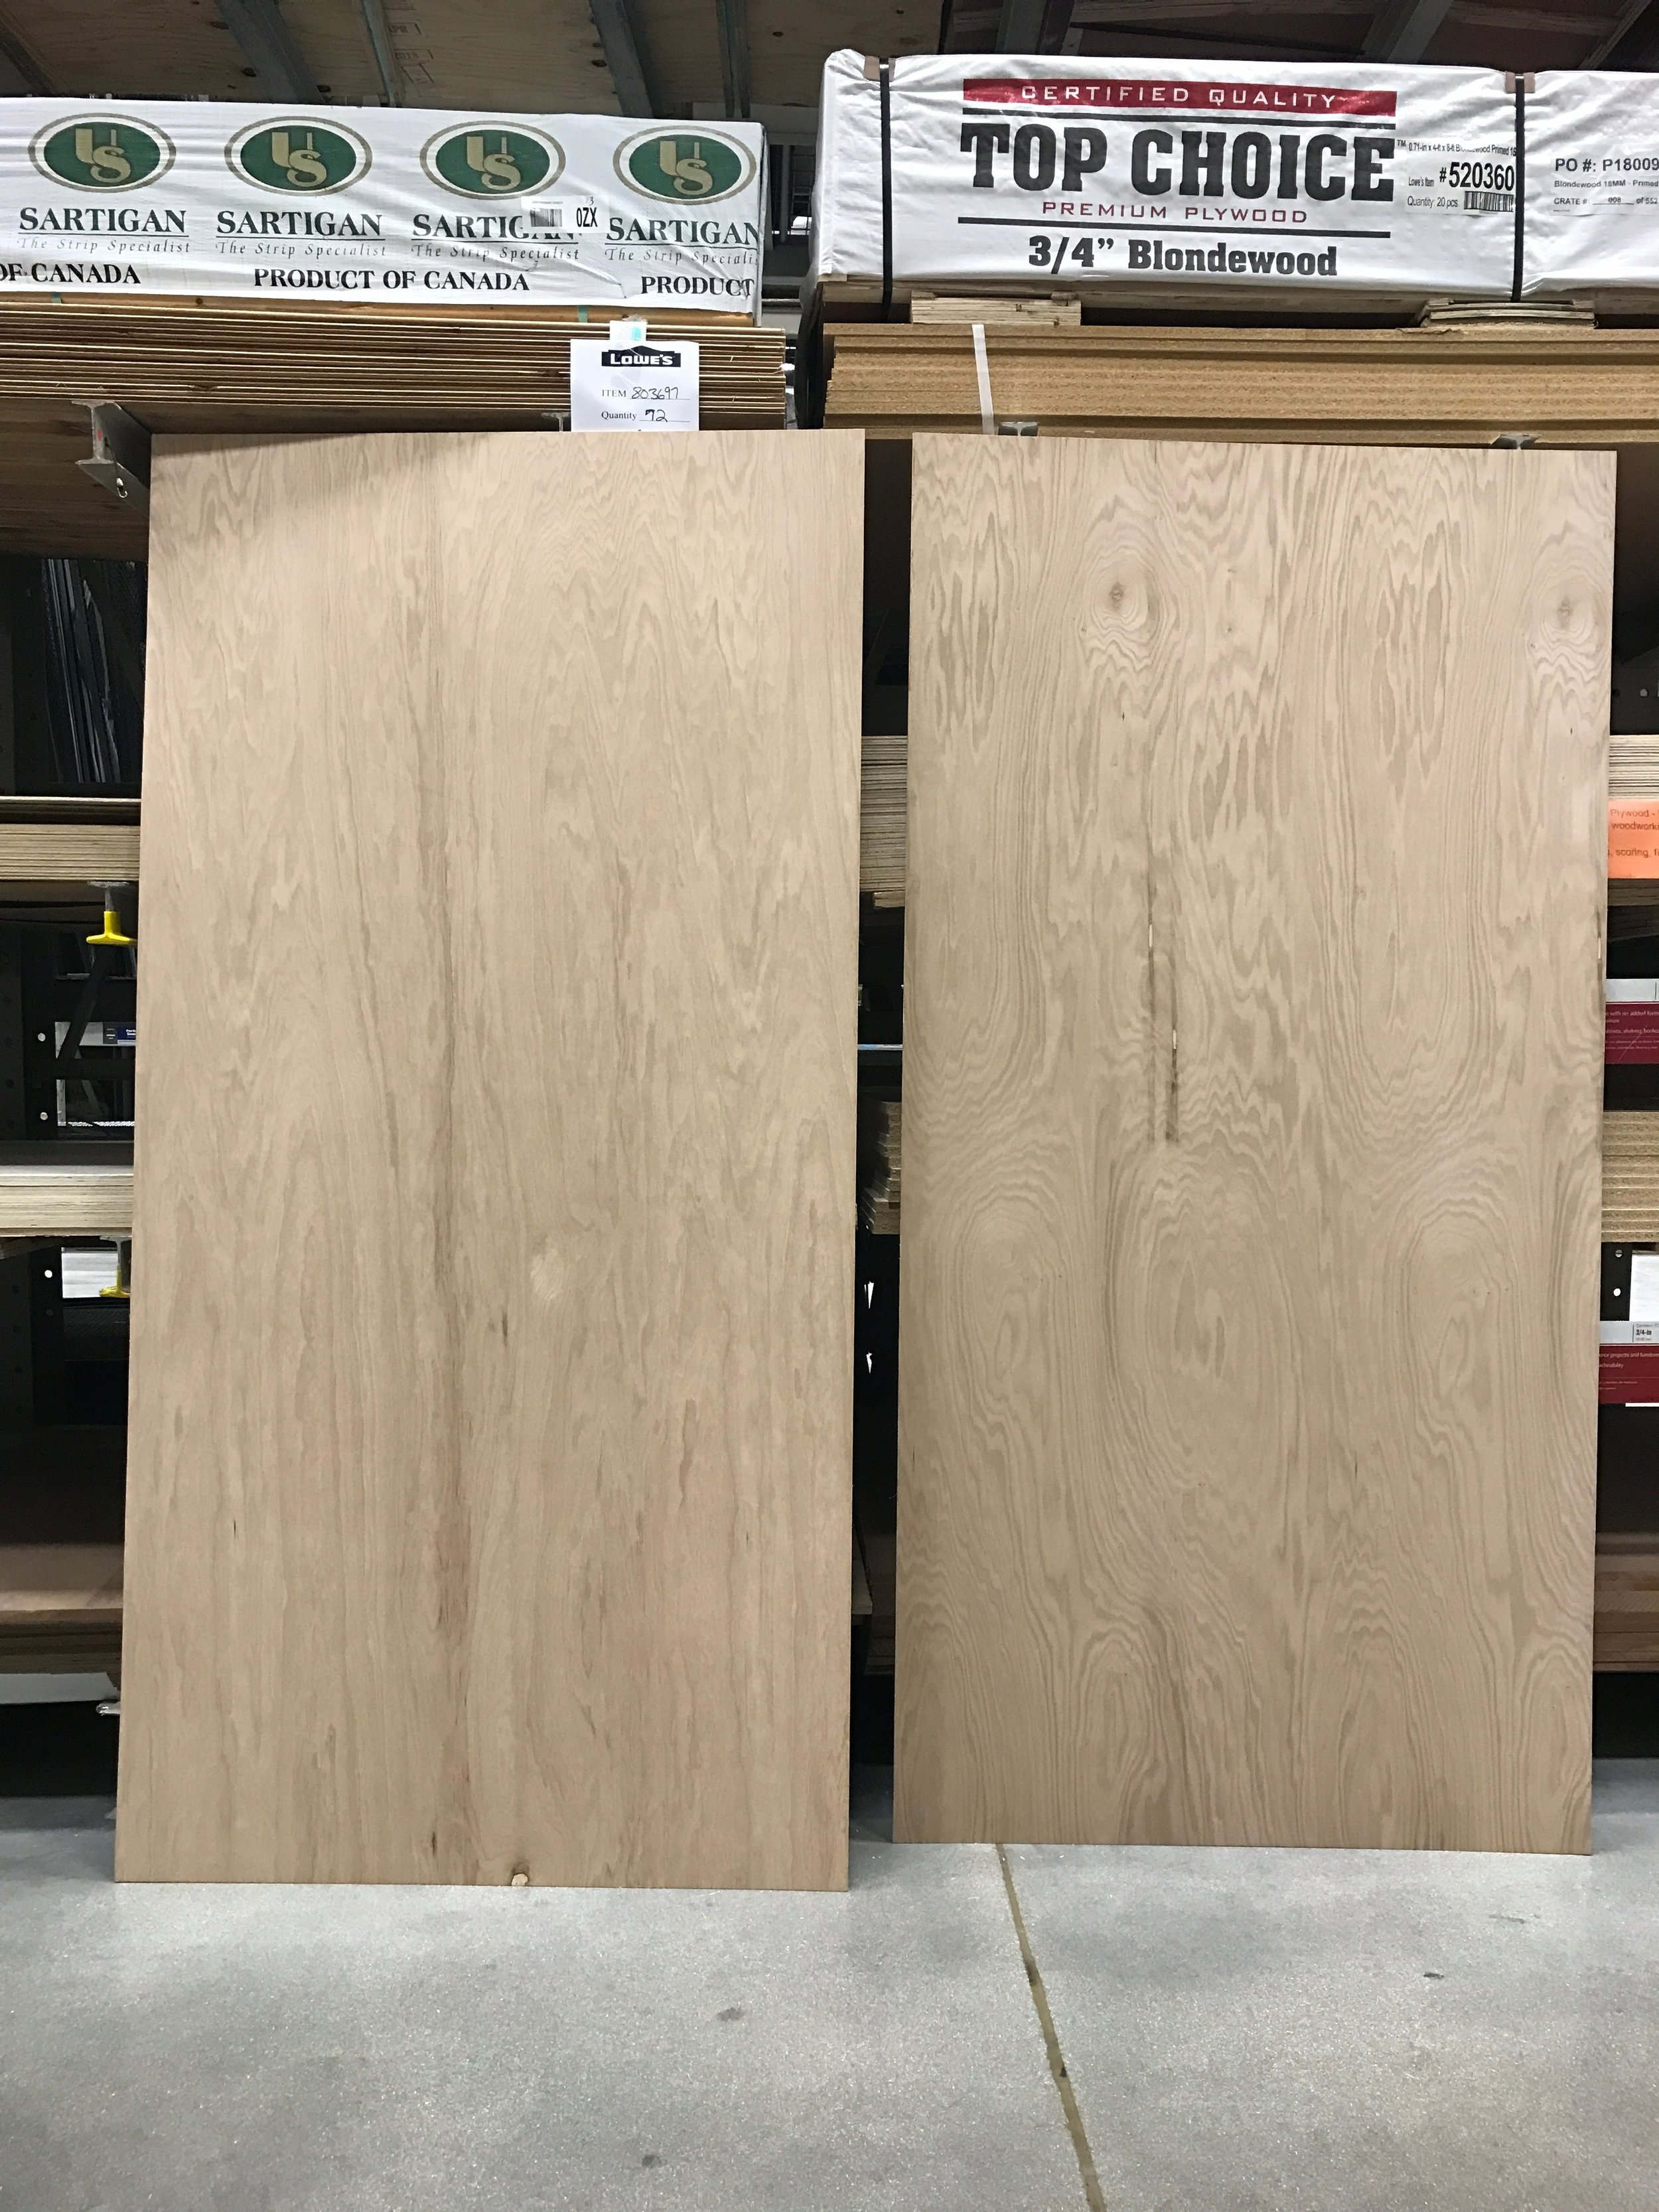 I chose the one on the left. I liked the grain- not too busy, but interesting and pretty.